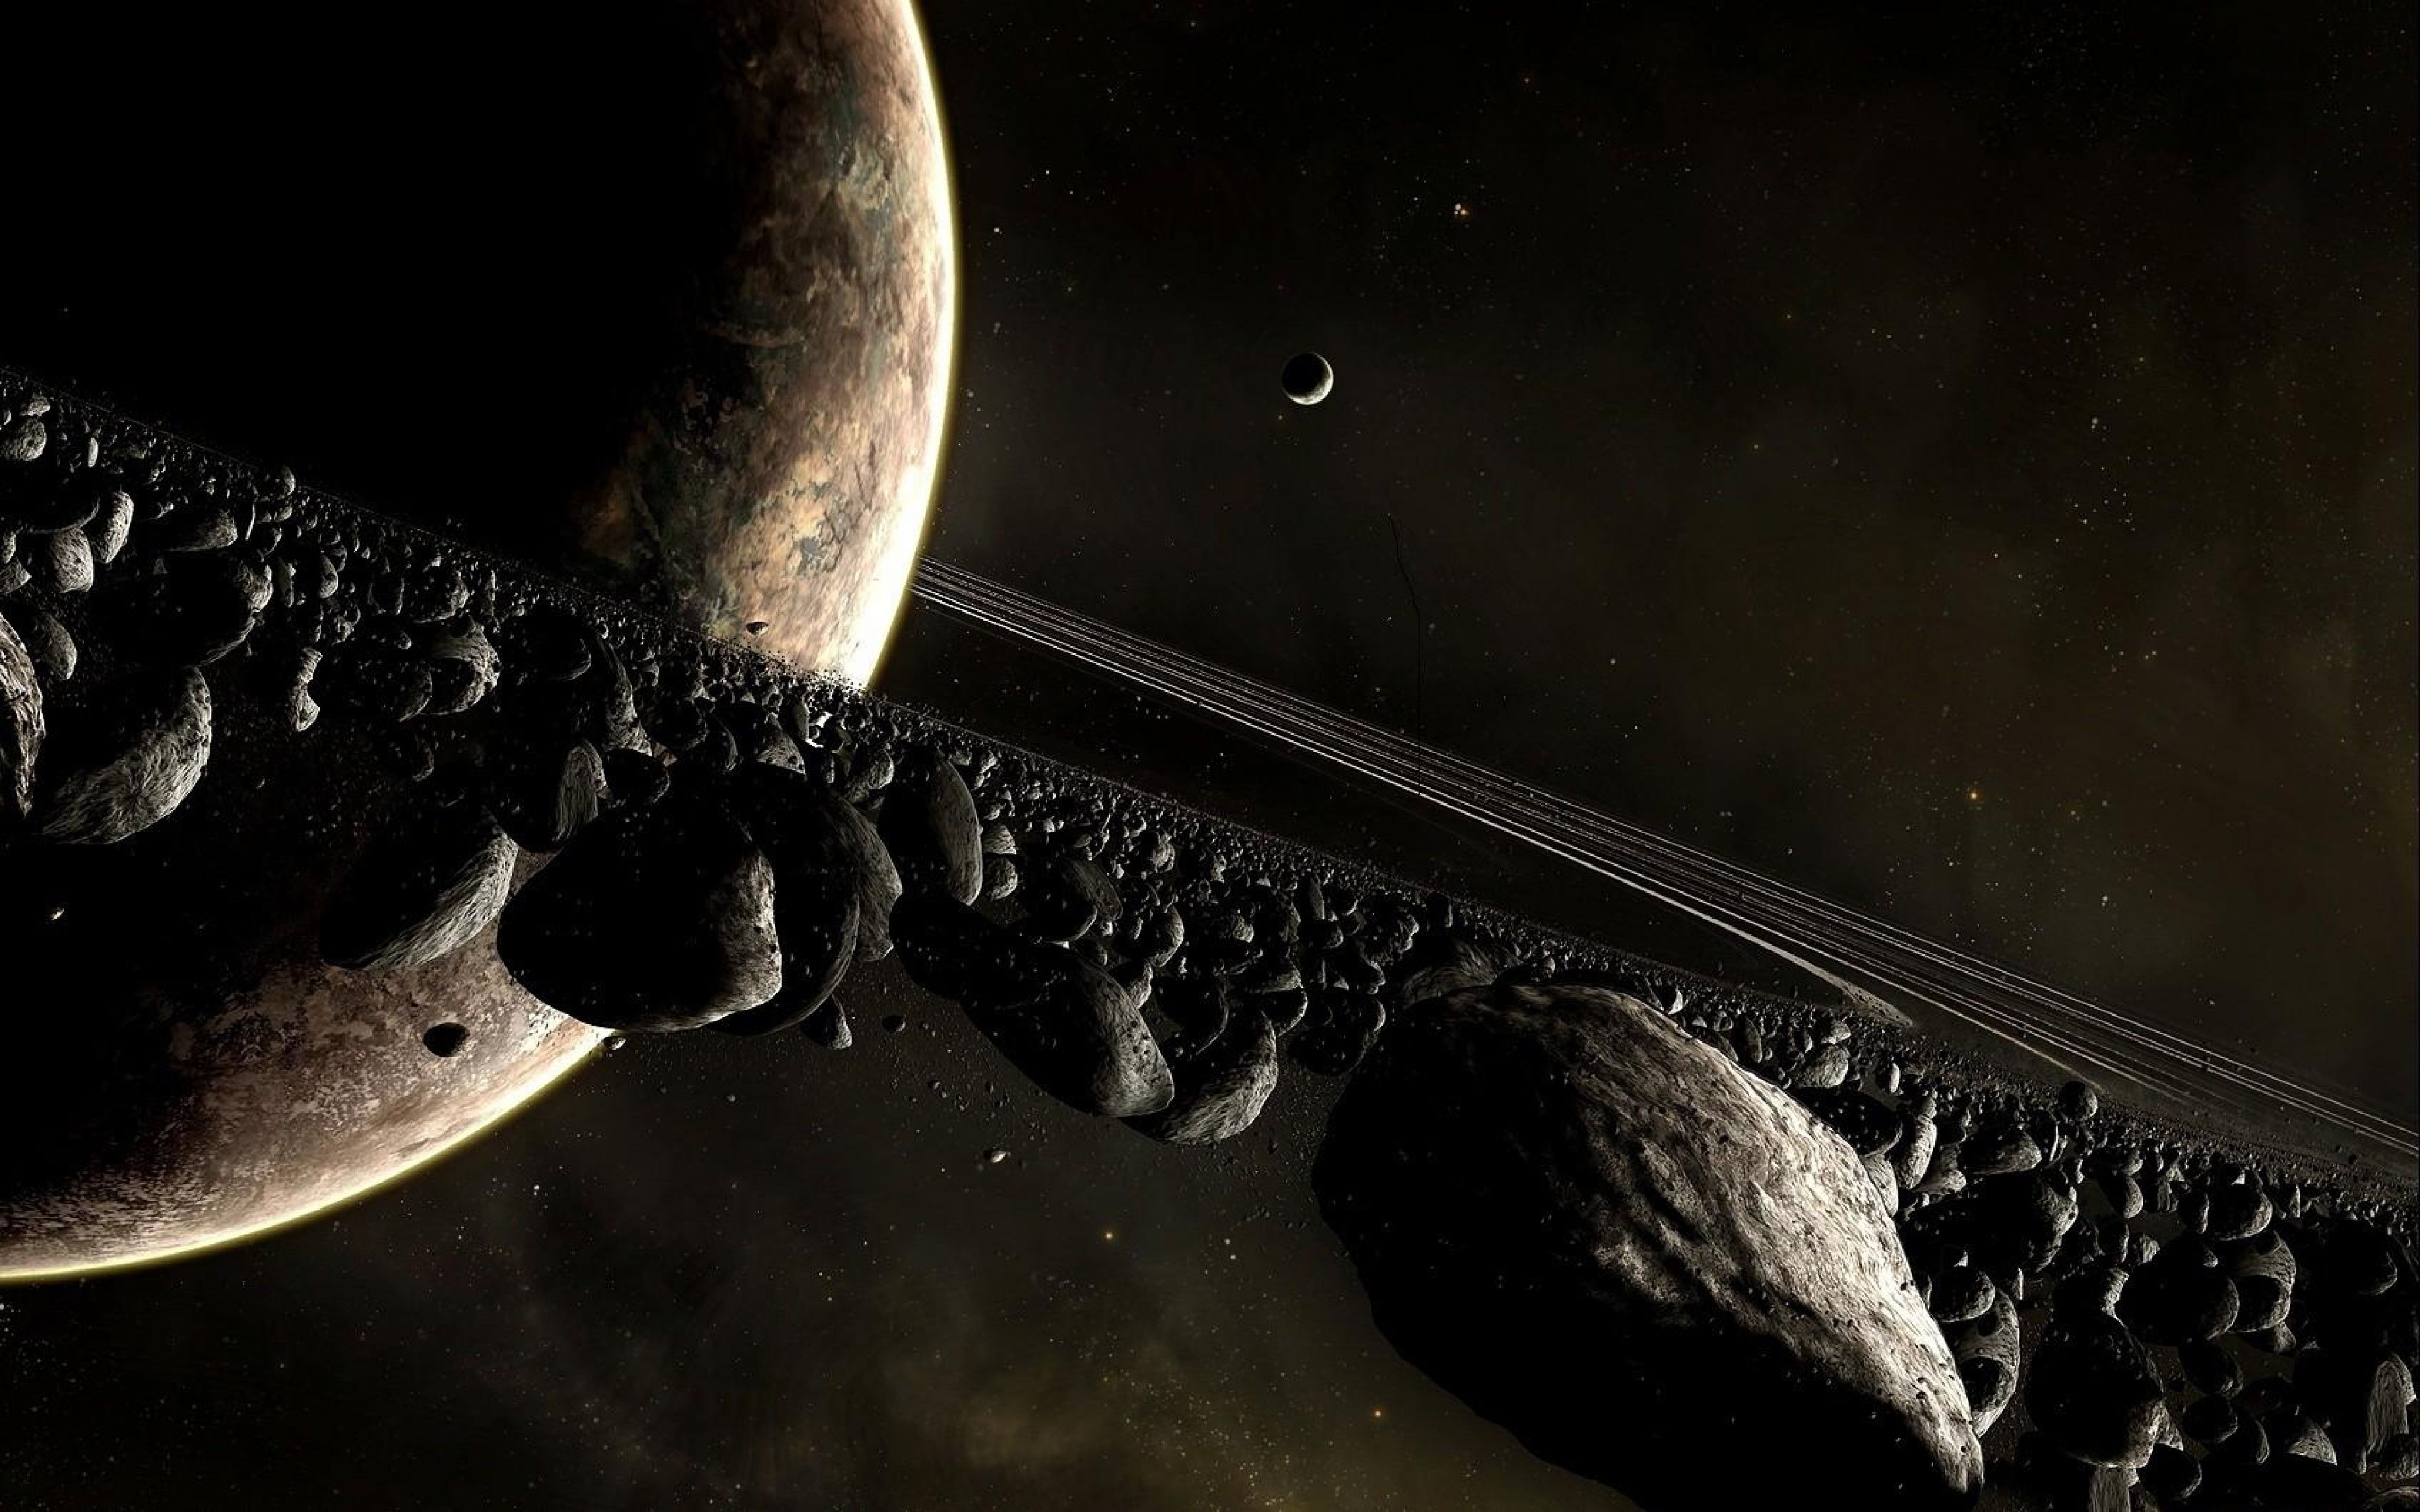 3840x2400 Wallpapers planet, space, ring, asteroids